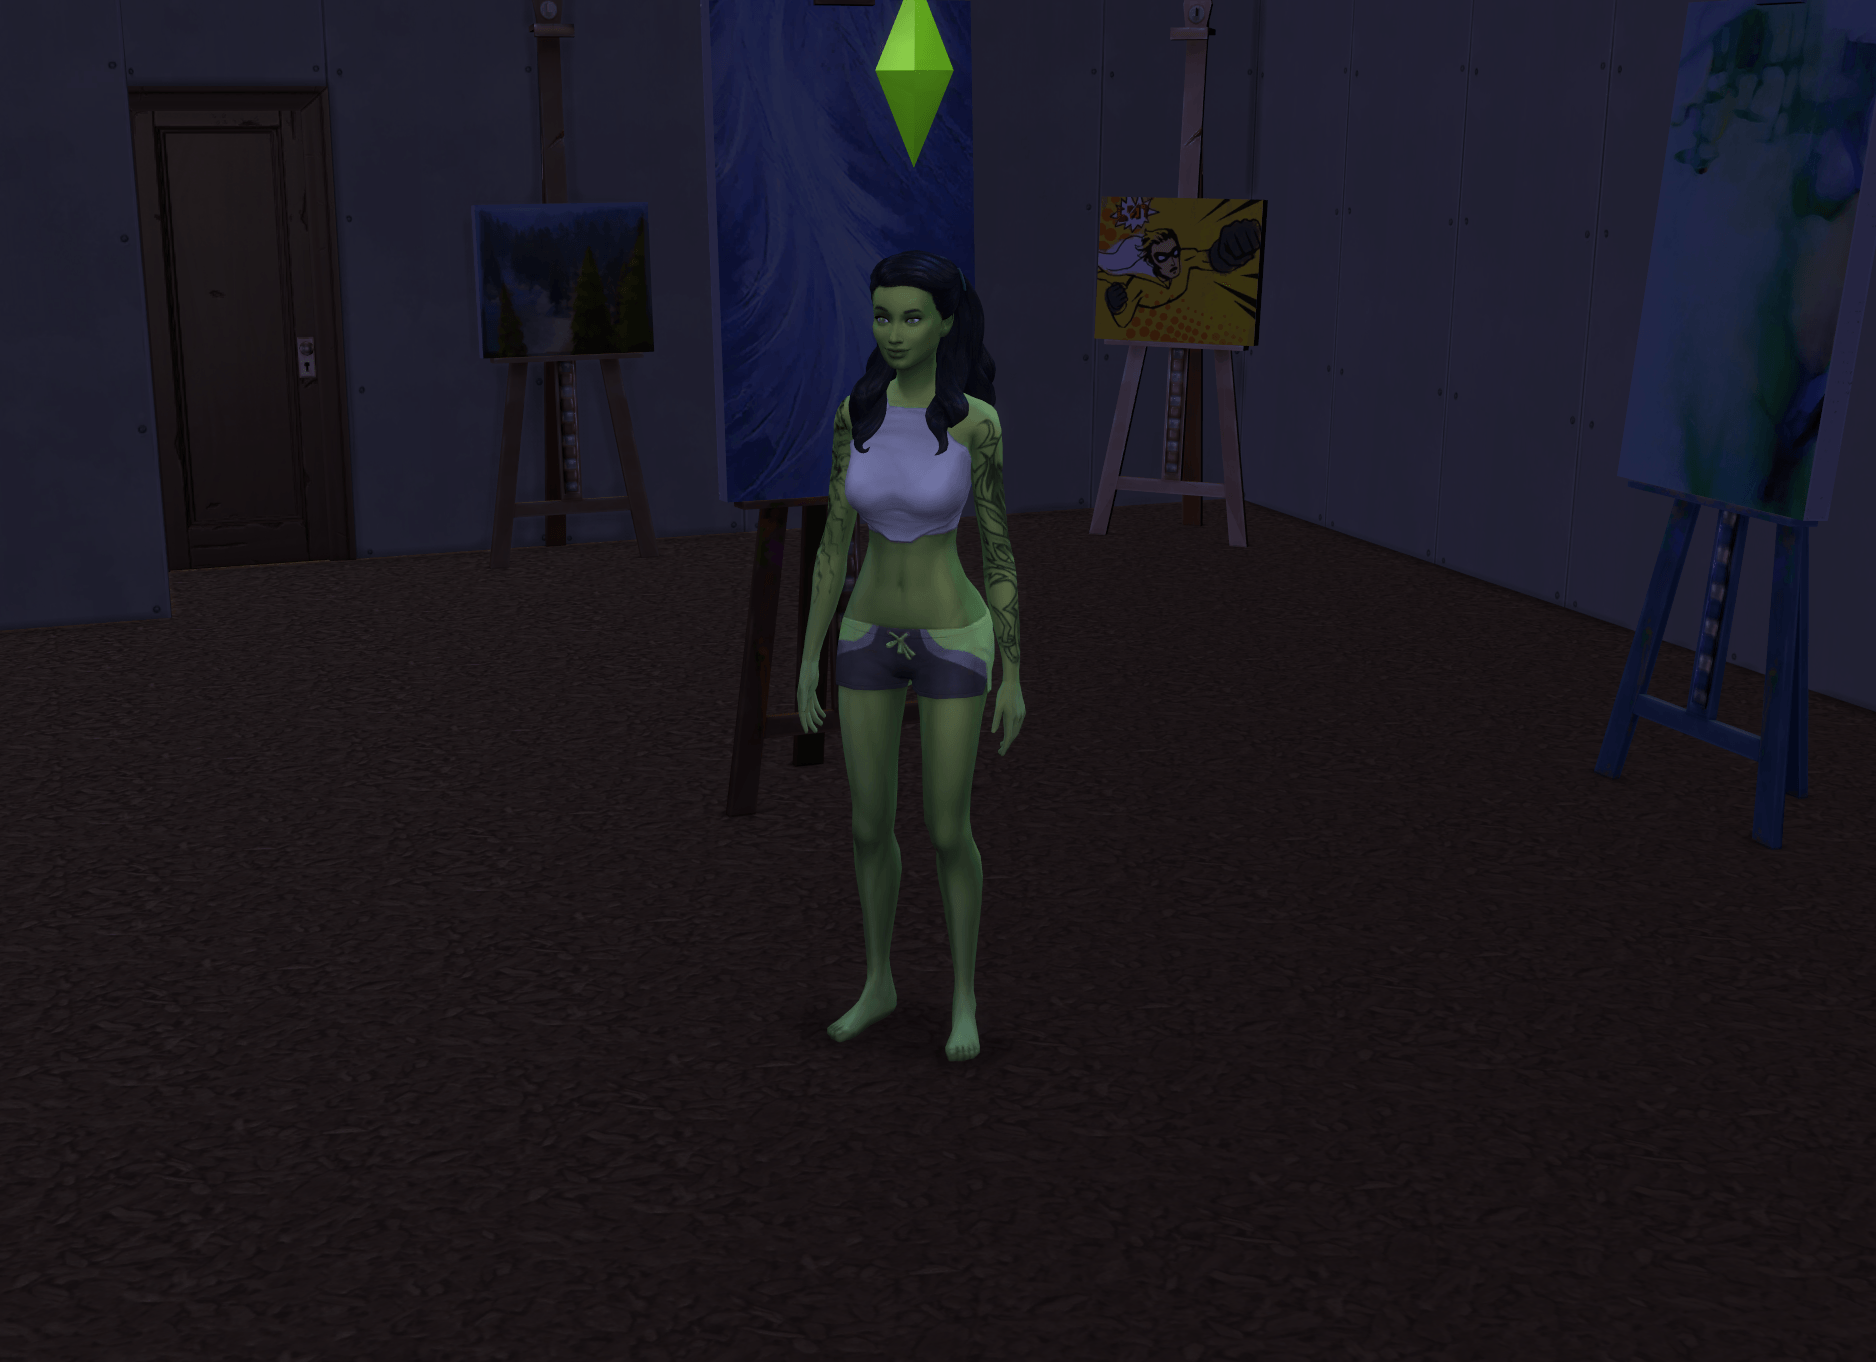 Painting Goblin People Describing The Worst Things They've Ever Done To Their Sims Proves Humanity Is The Worst